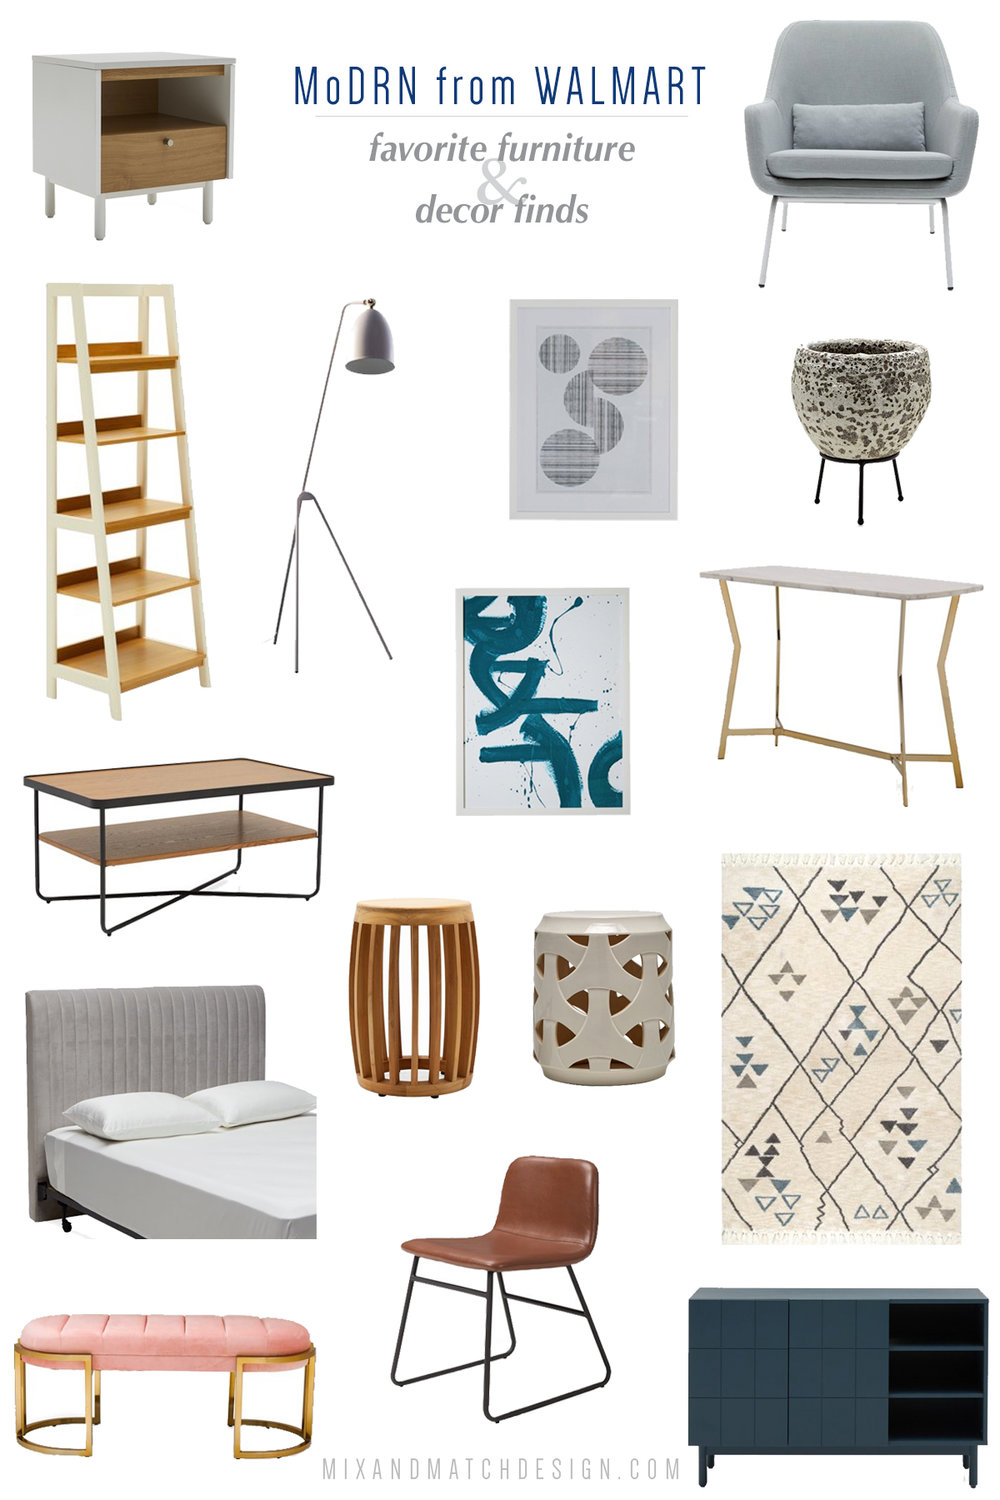 Have you seen the new MoDRN collection from Walmart? They've got a great selection of affordable modern furniture and home decor. If you love Scandinavian or mid-century style, you definitely want to check this out. Click the image to take a look at these pieces!